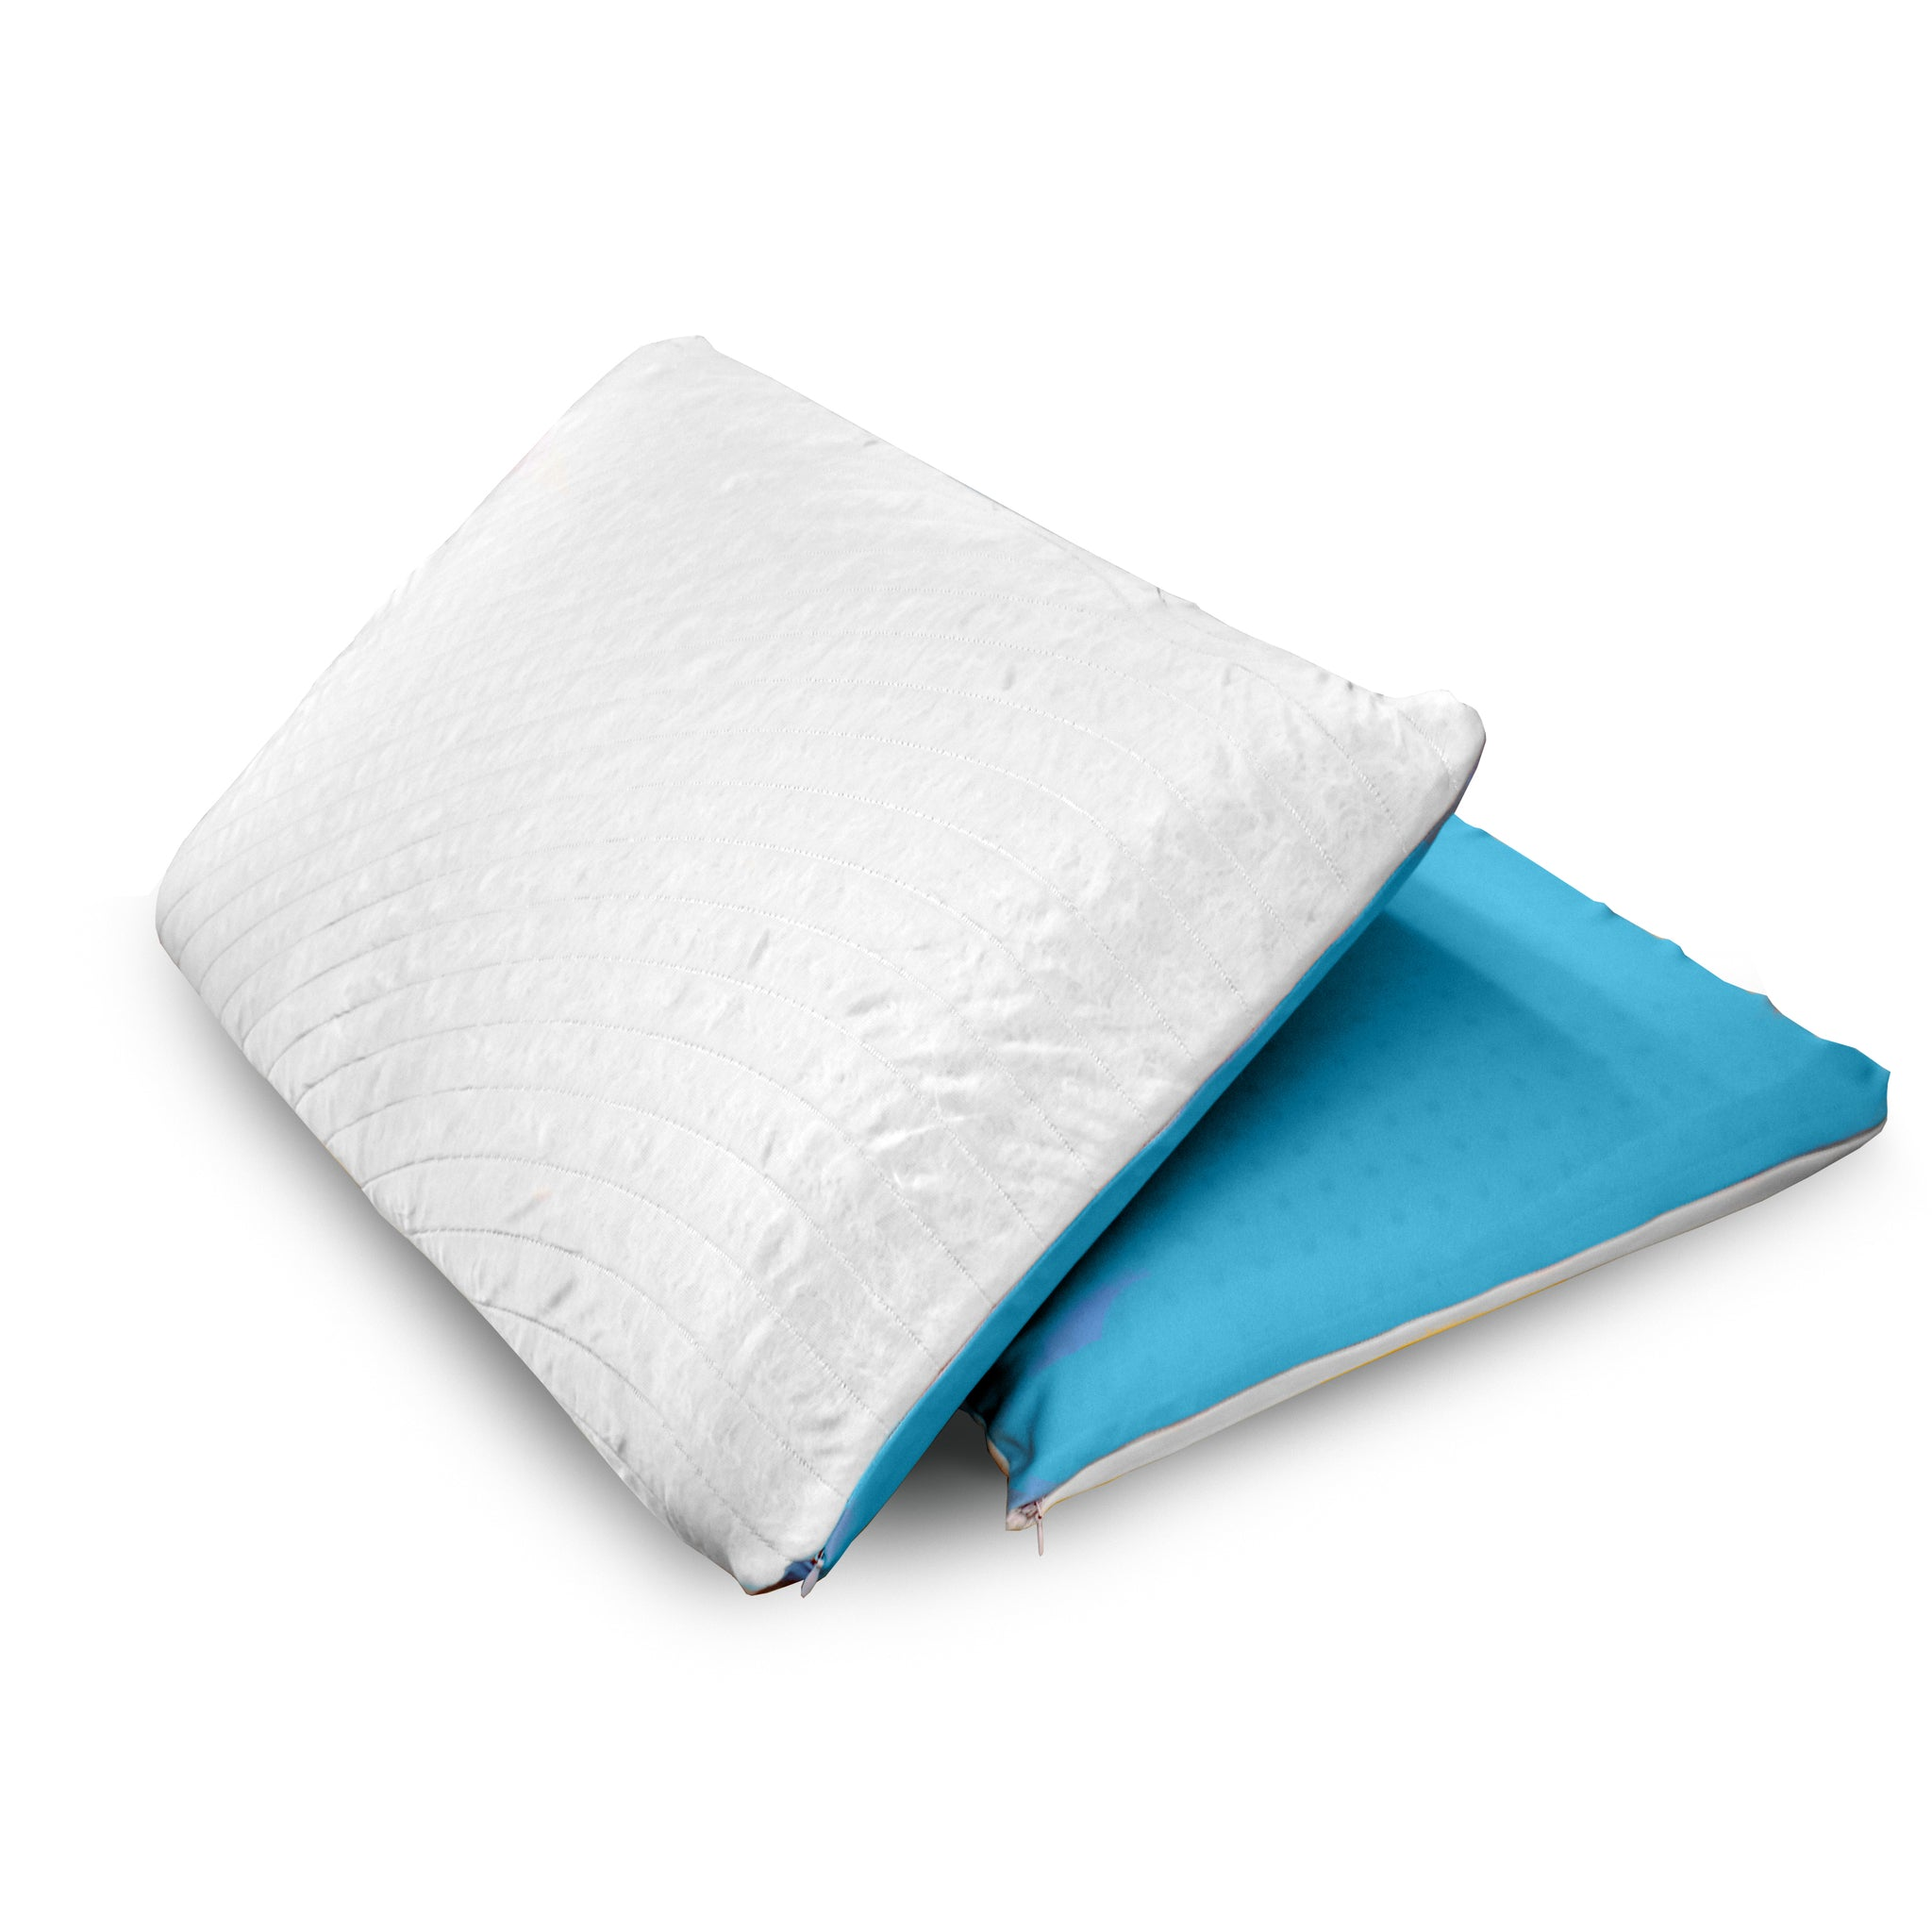 down bed protect cold with cooling size alternative fill queen classic a snow new pillow